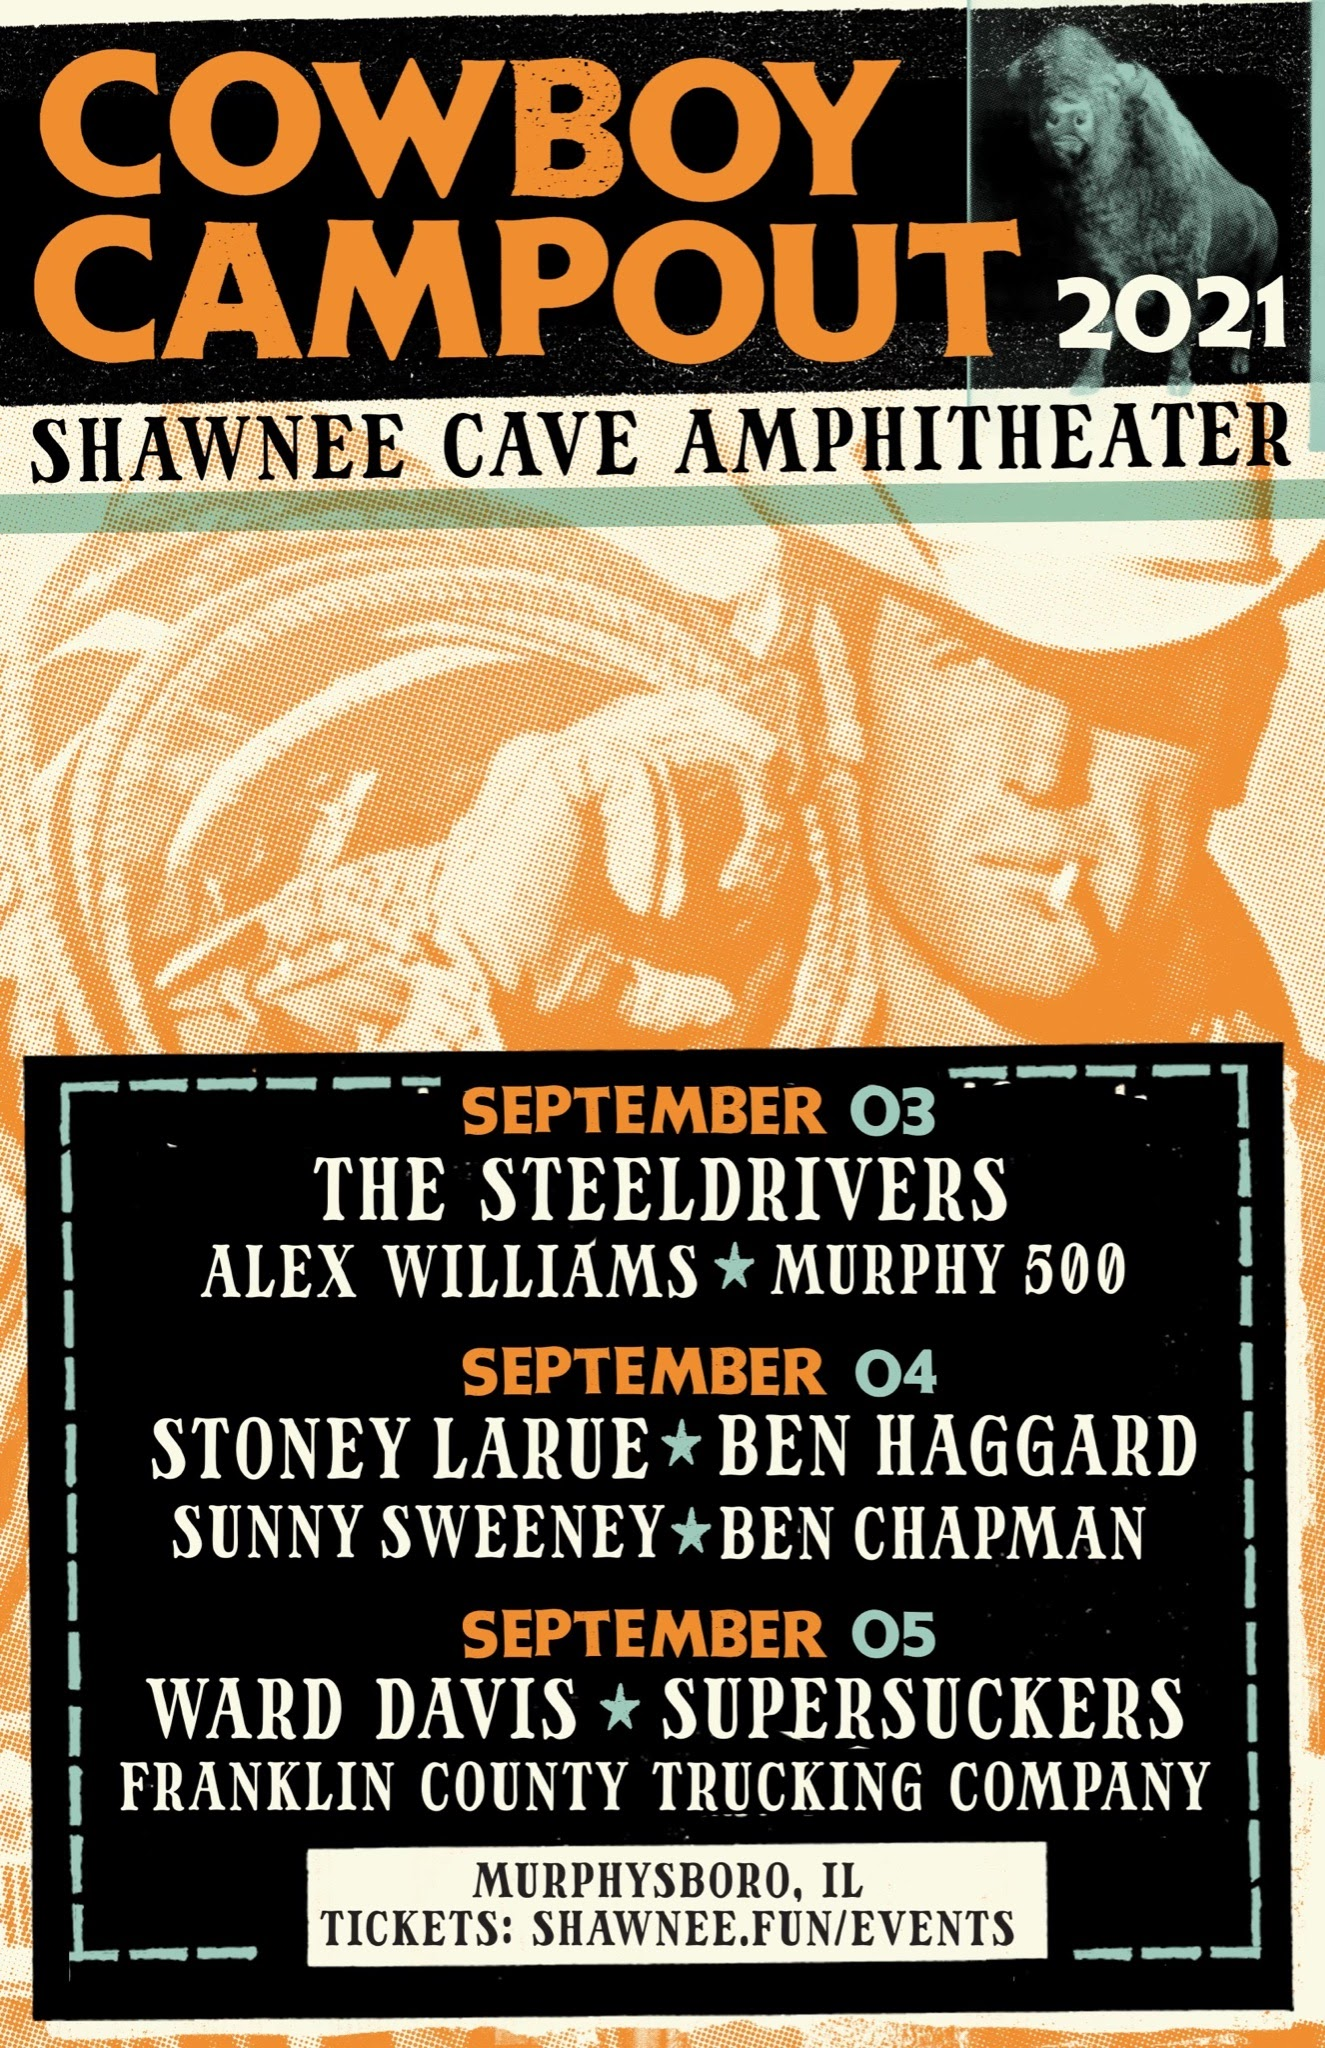 The Shawnee Cave Amphitheater Announces Labor Day Weekend Music Event Cowboy Campout 2021